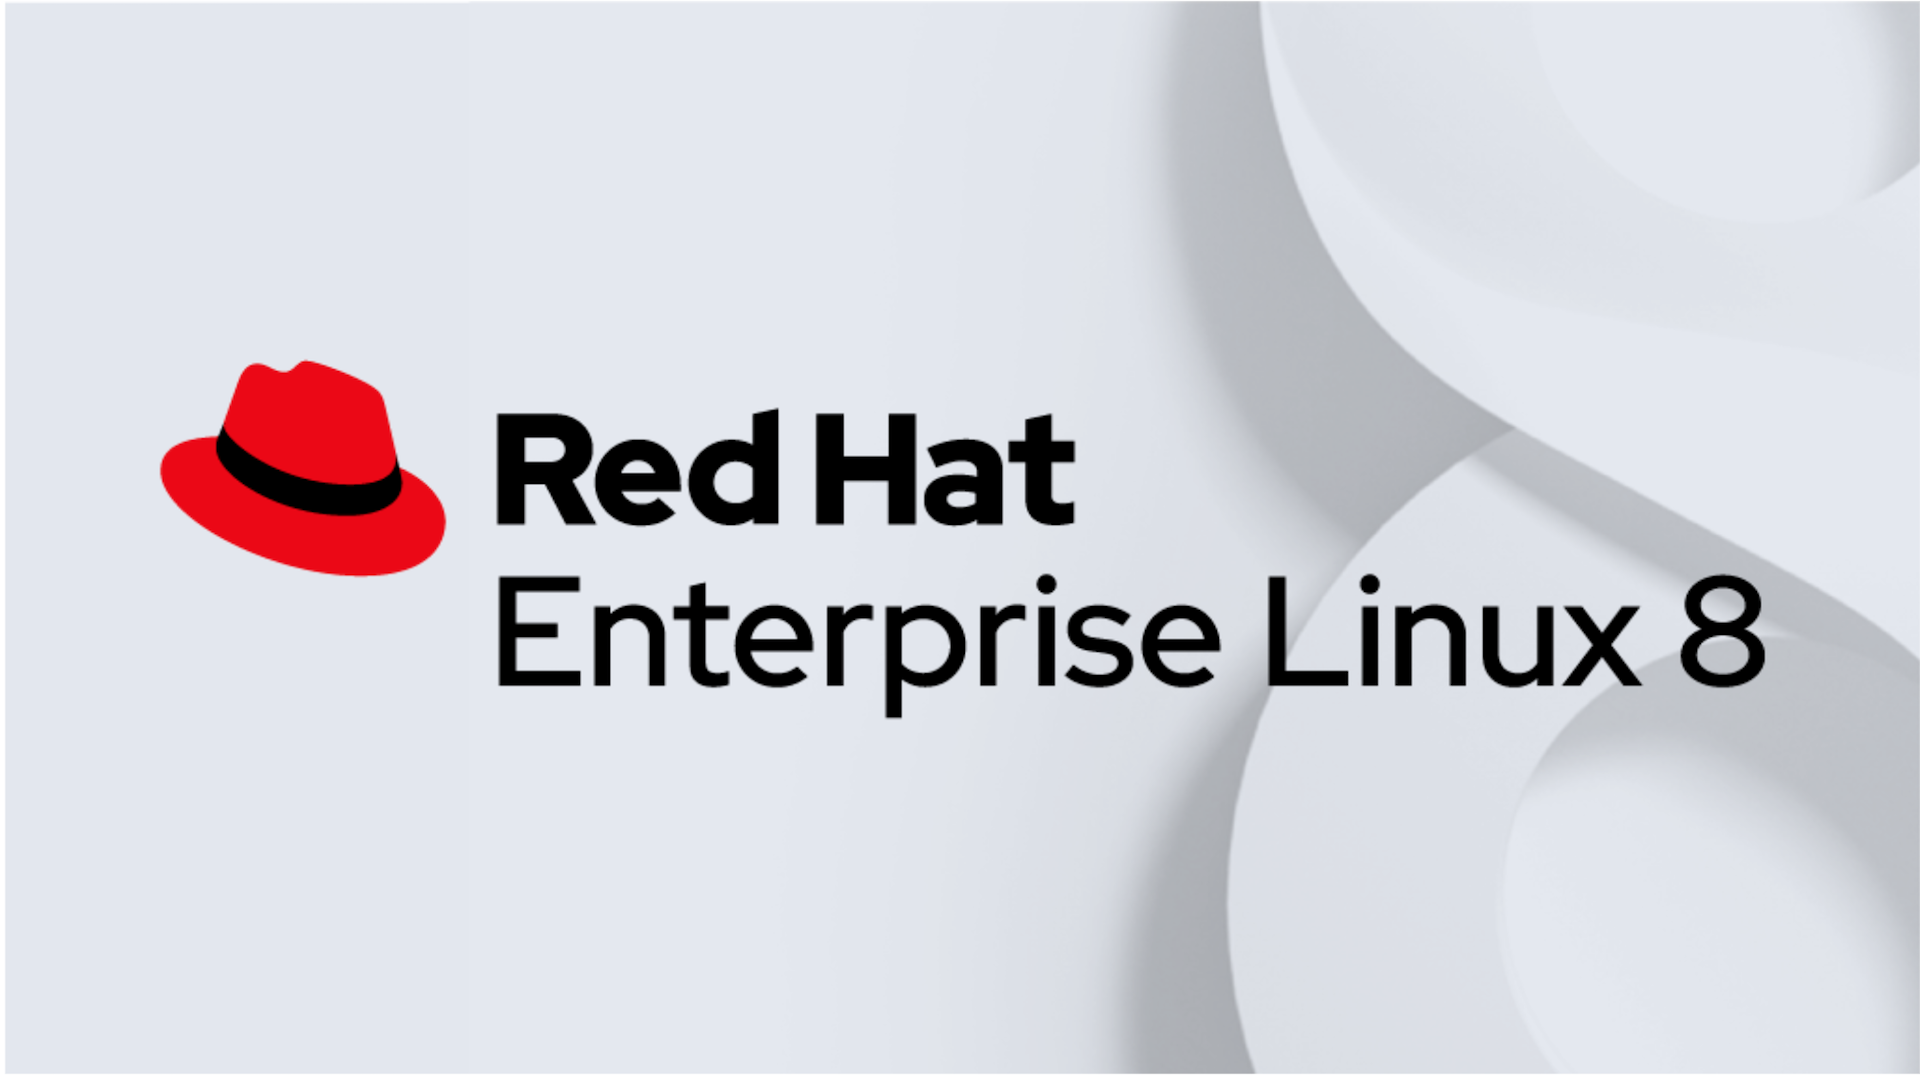 Support lifecycle for Clang/LLVM, Go, and Rust in Red Hat Enterprise Linux 8